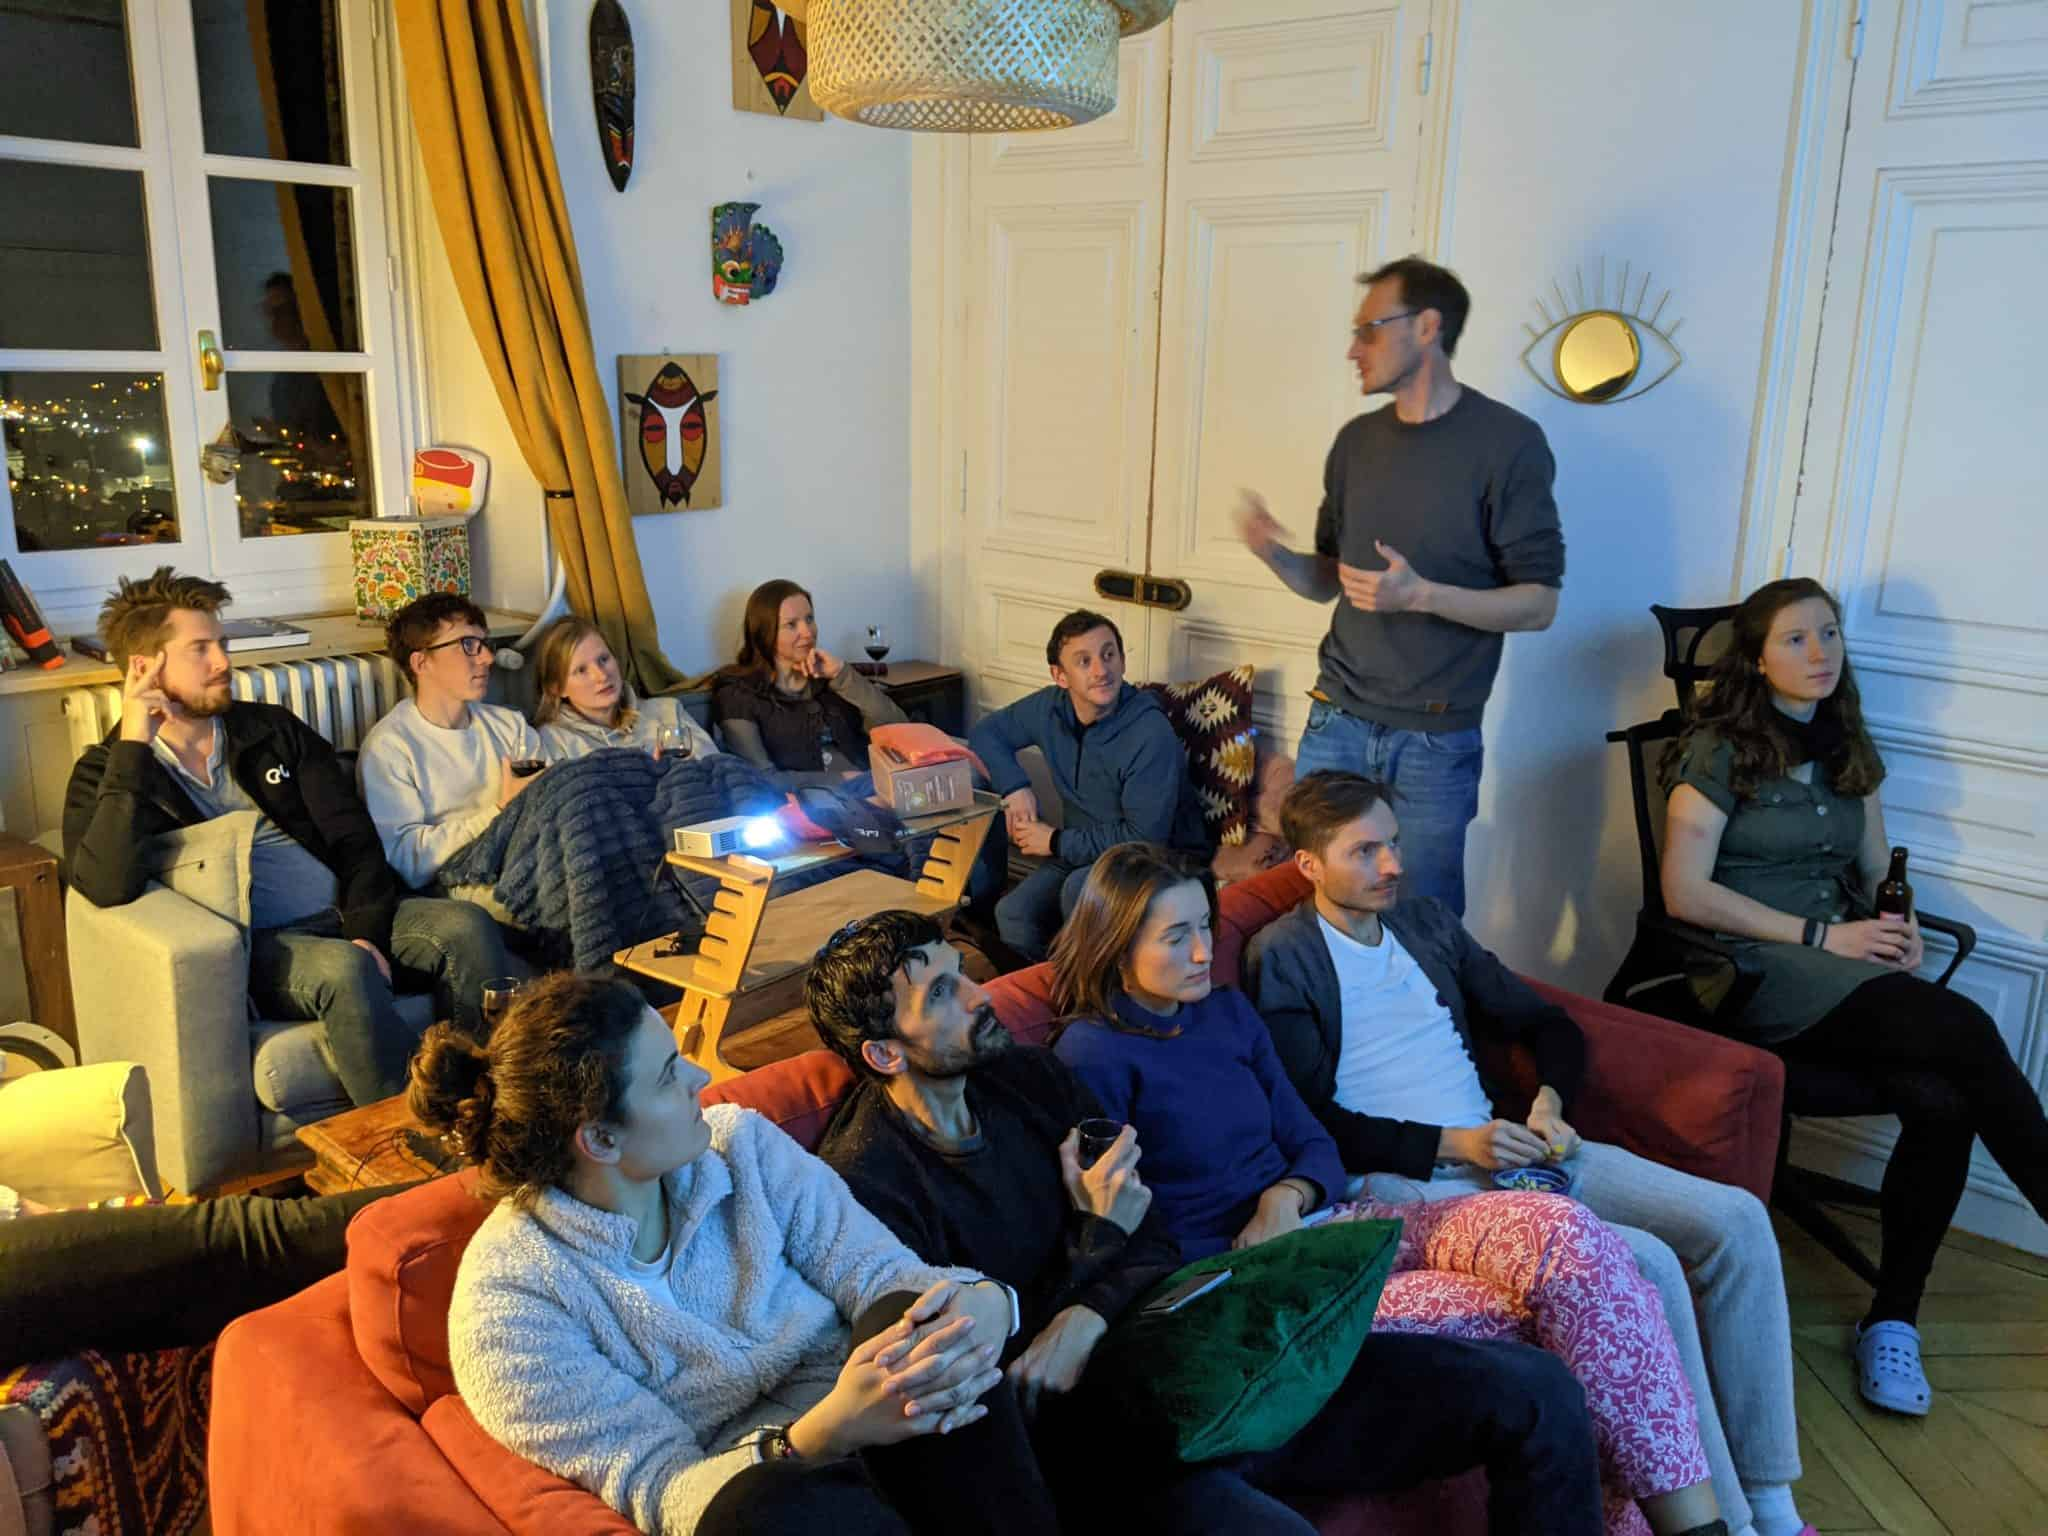 co-living in France, co-working, remote work, volunteer opportunity, intentional community